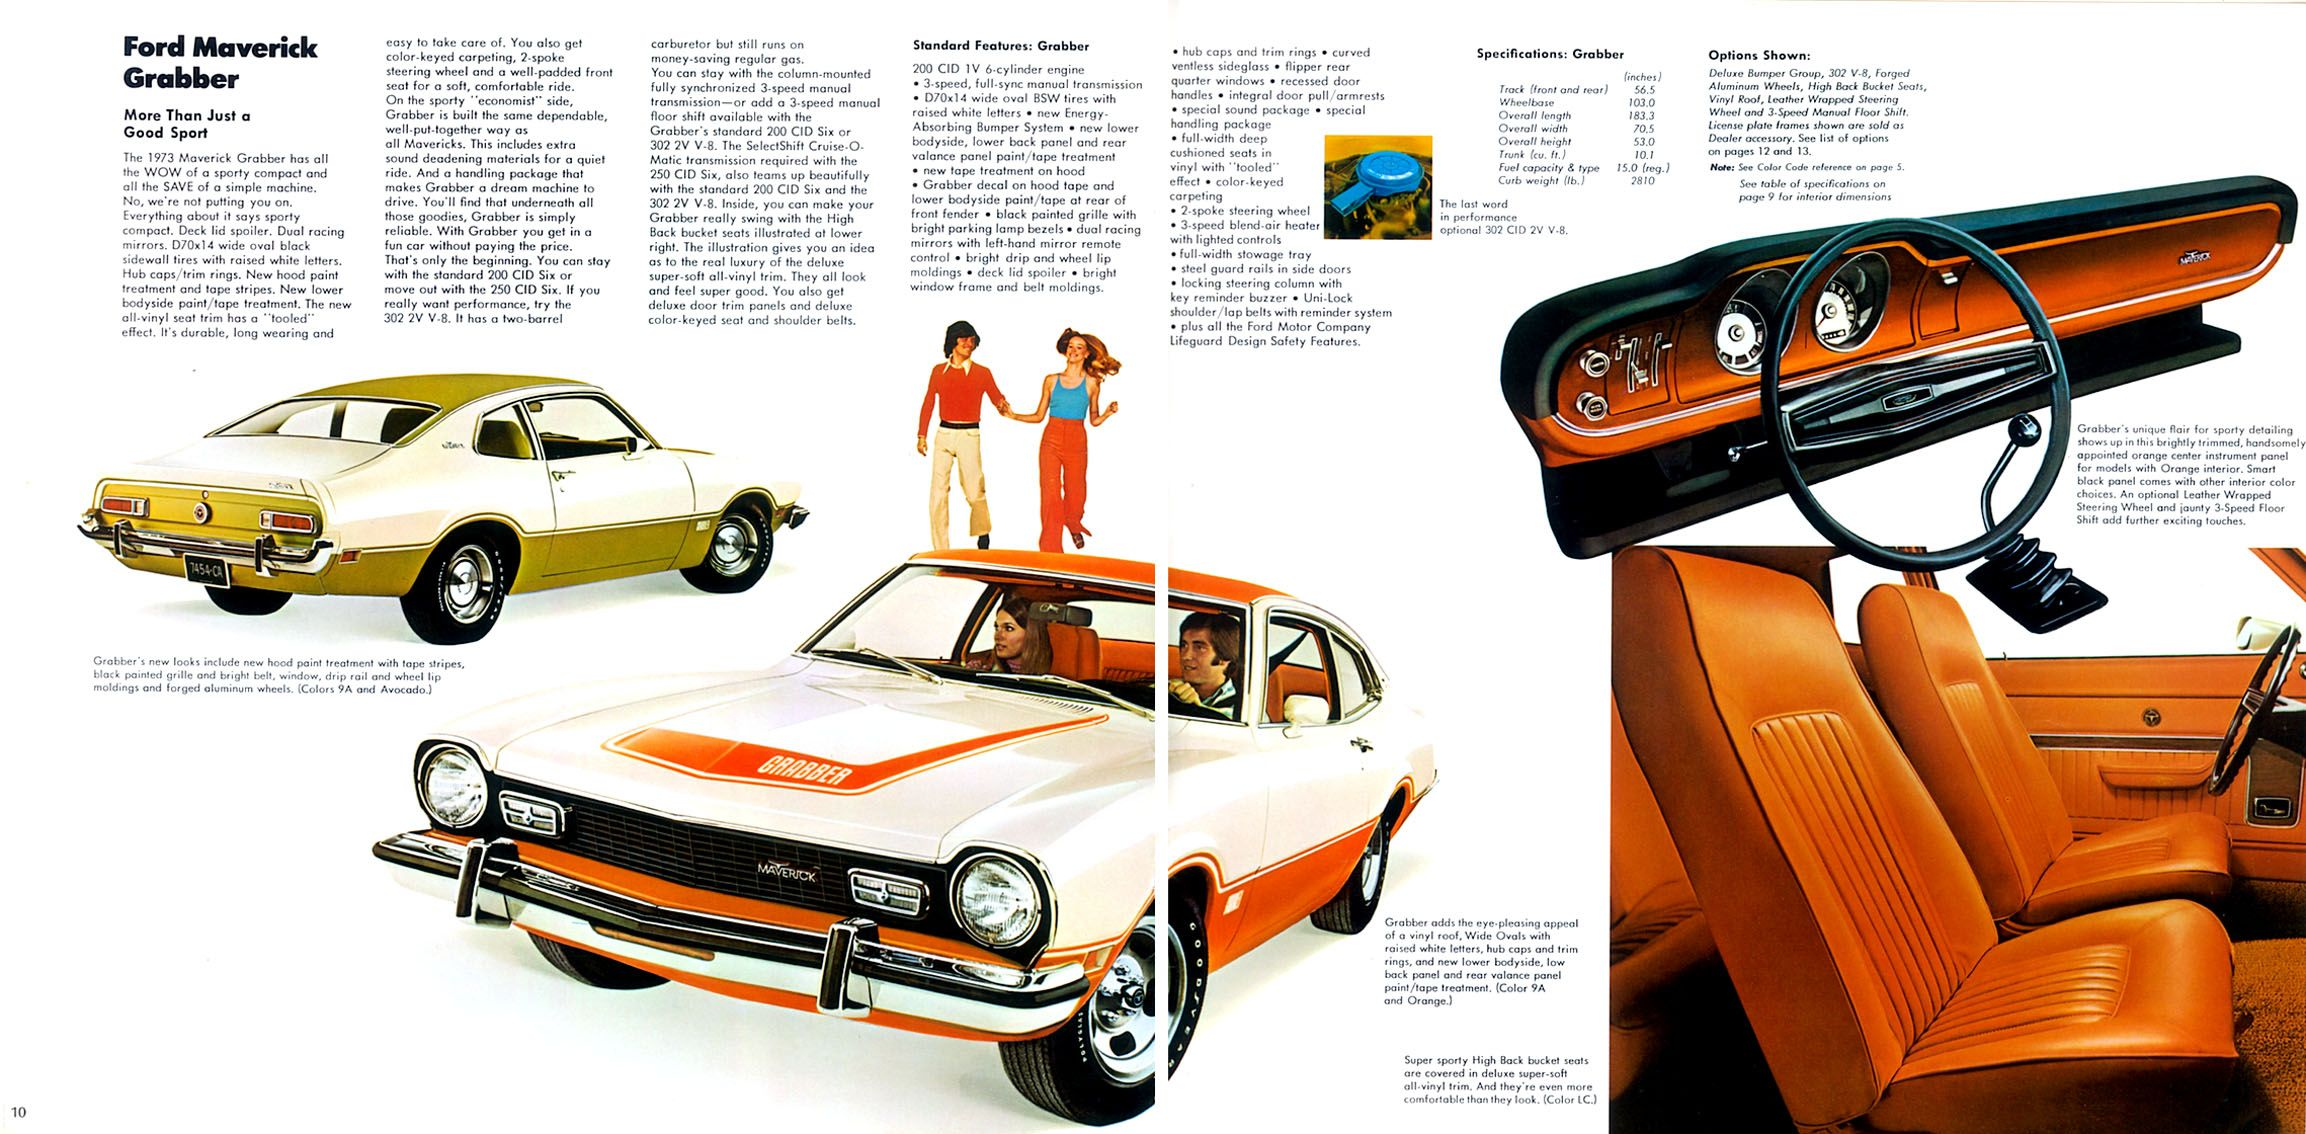 1973 Ford Maverick Grabber Ford Maverick Car Brochure Ford